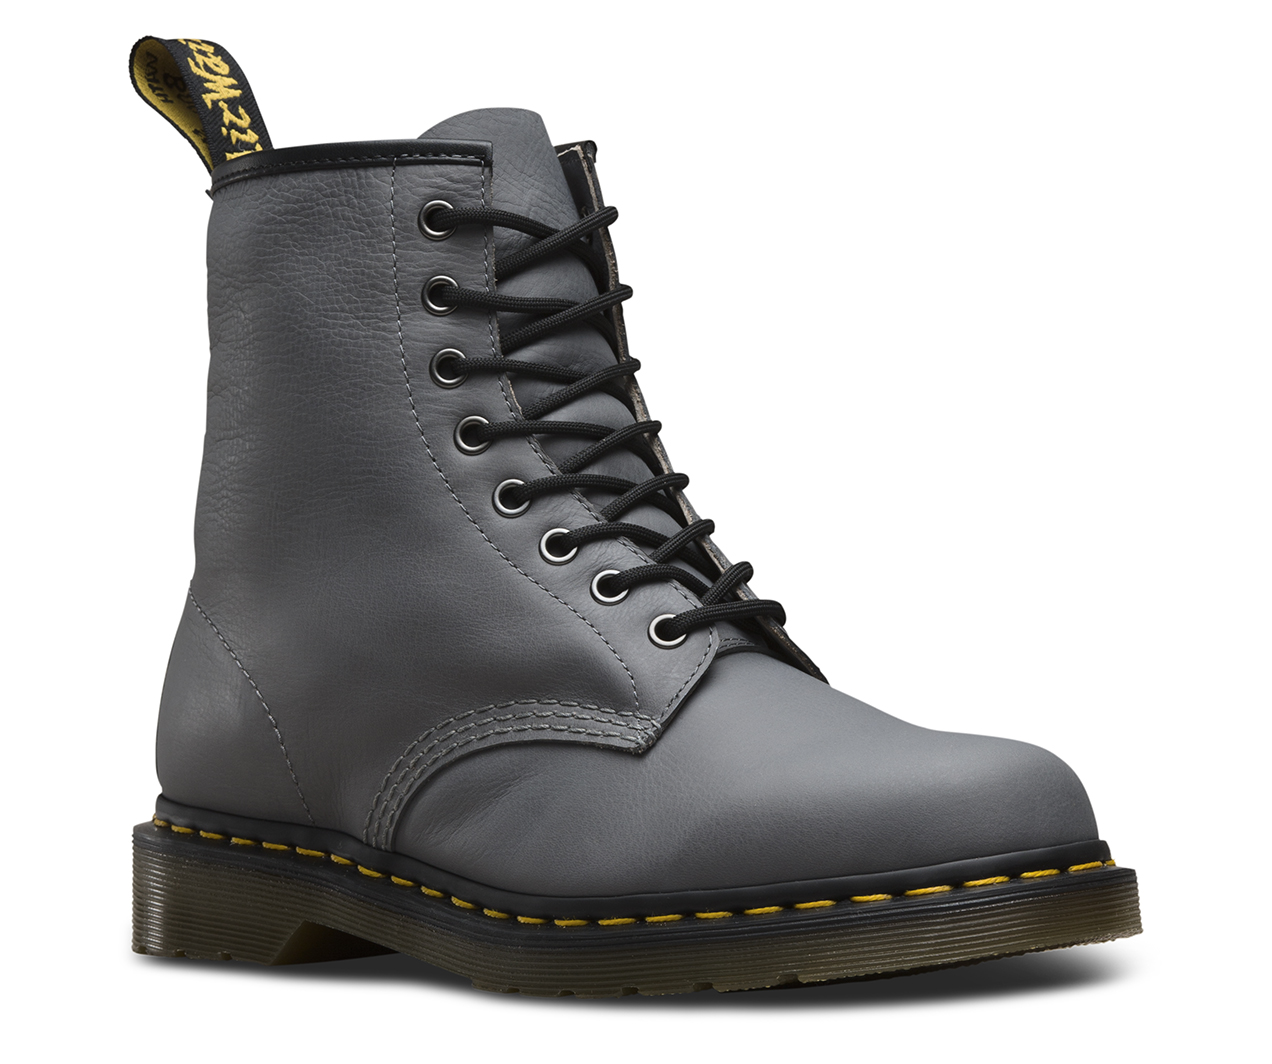 1460 carpathian men 39 s boots shoes official dr martens store uk. Black Bedroom Furniture Sets. Home Design Ideas